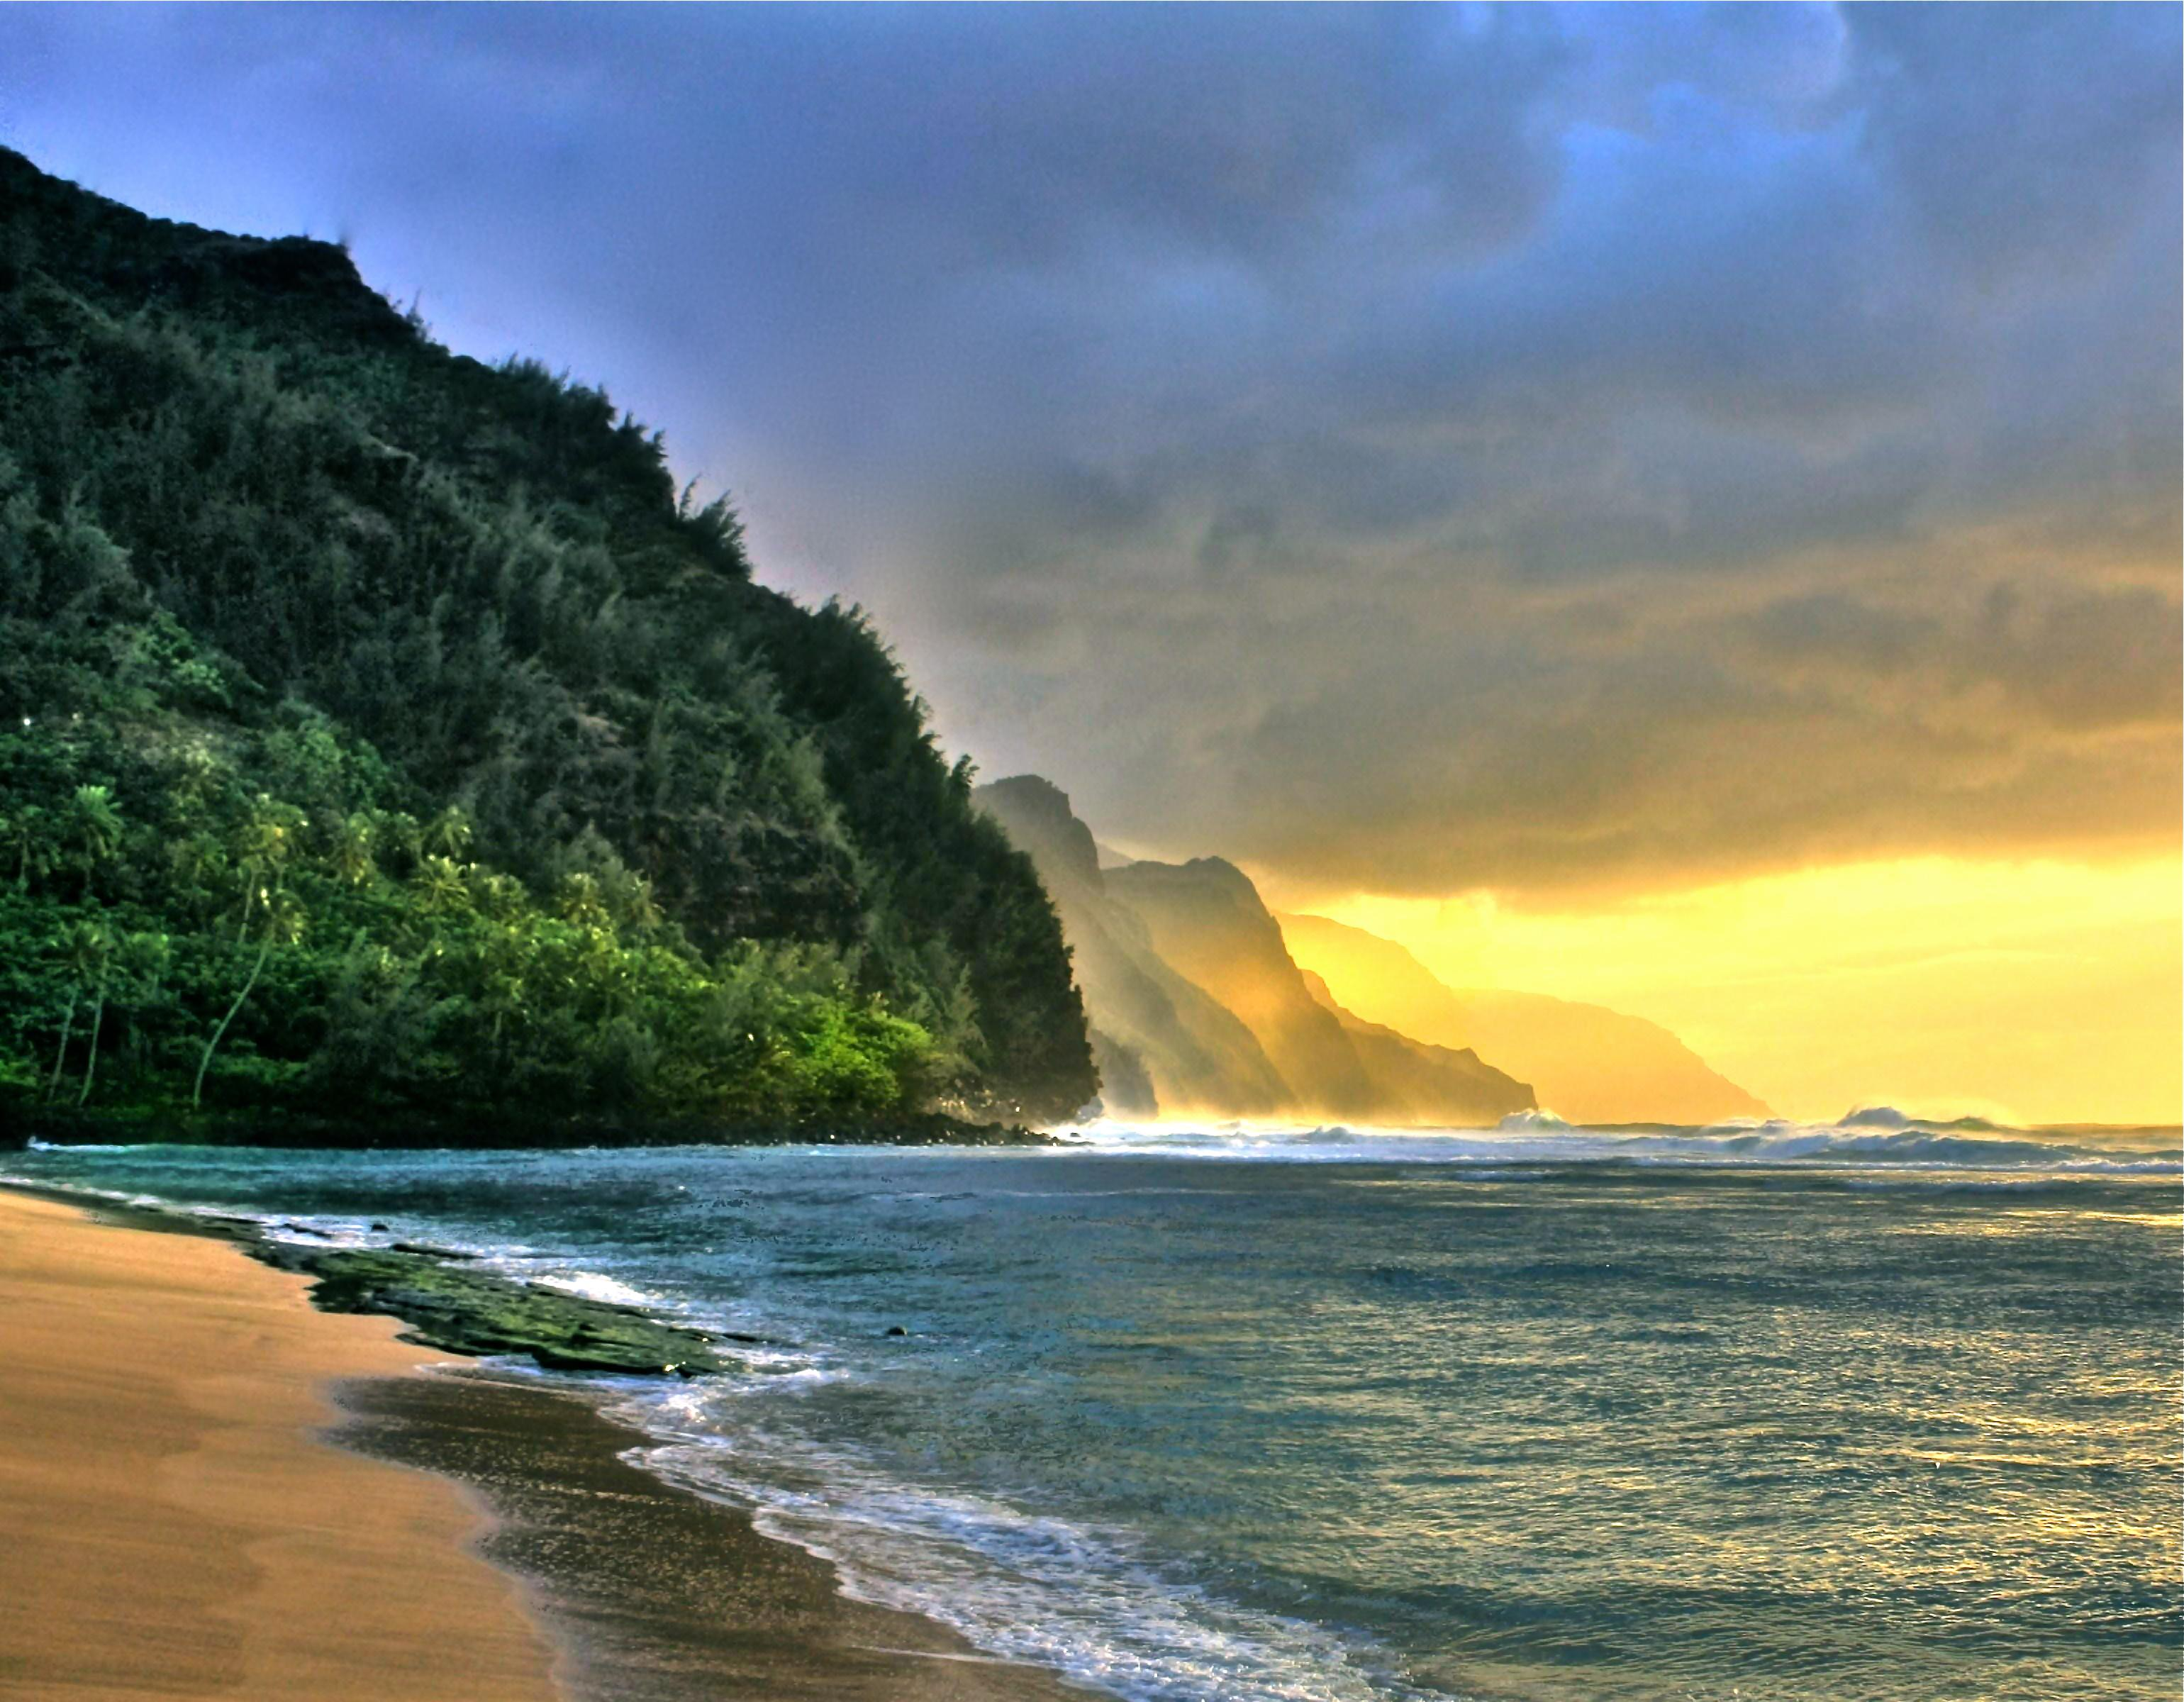 """Kauai North Shore<br/>Photo <a href=""""//creativecommons.org/licences/by-nd/3.0/"""" class=""""cc-small"""" target=""""_blank""""><img typeof=""""foaf:Image"""" class=""""image-style-none"""" src=""""https://i.creativecommons.org/l/by-nd/3.0/80x15.png"""" width=""""80px"""" height=""""15px"""" alt=""""Creative Commons Licence"""" /></a> <a href=""""http://www.flickr.com/photos/20298489@N08/5564685609"""">Chuck 55</a>"""